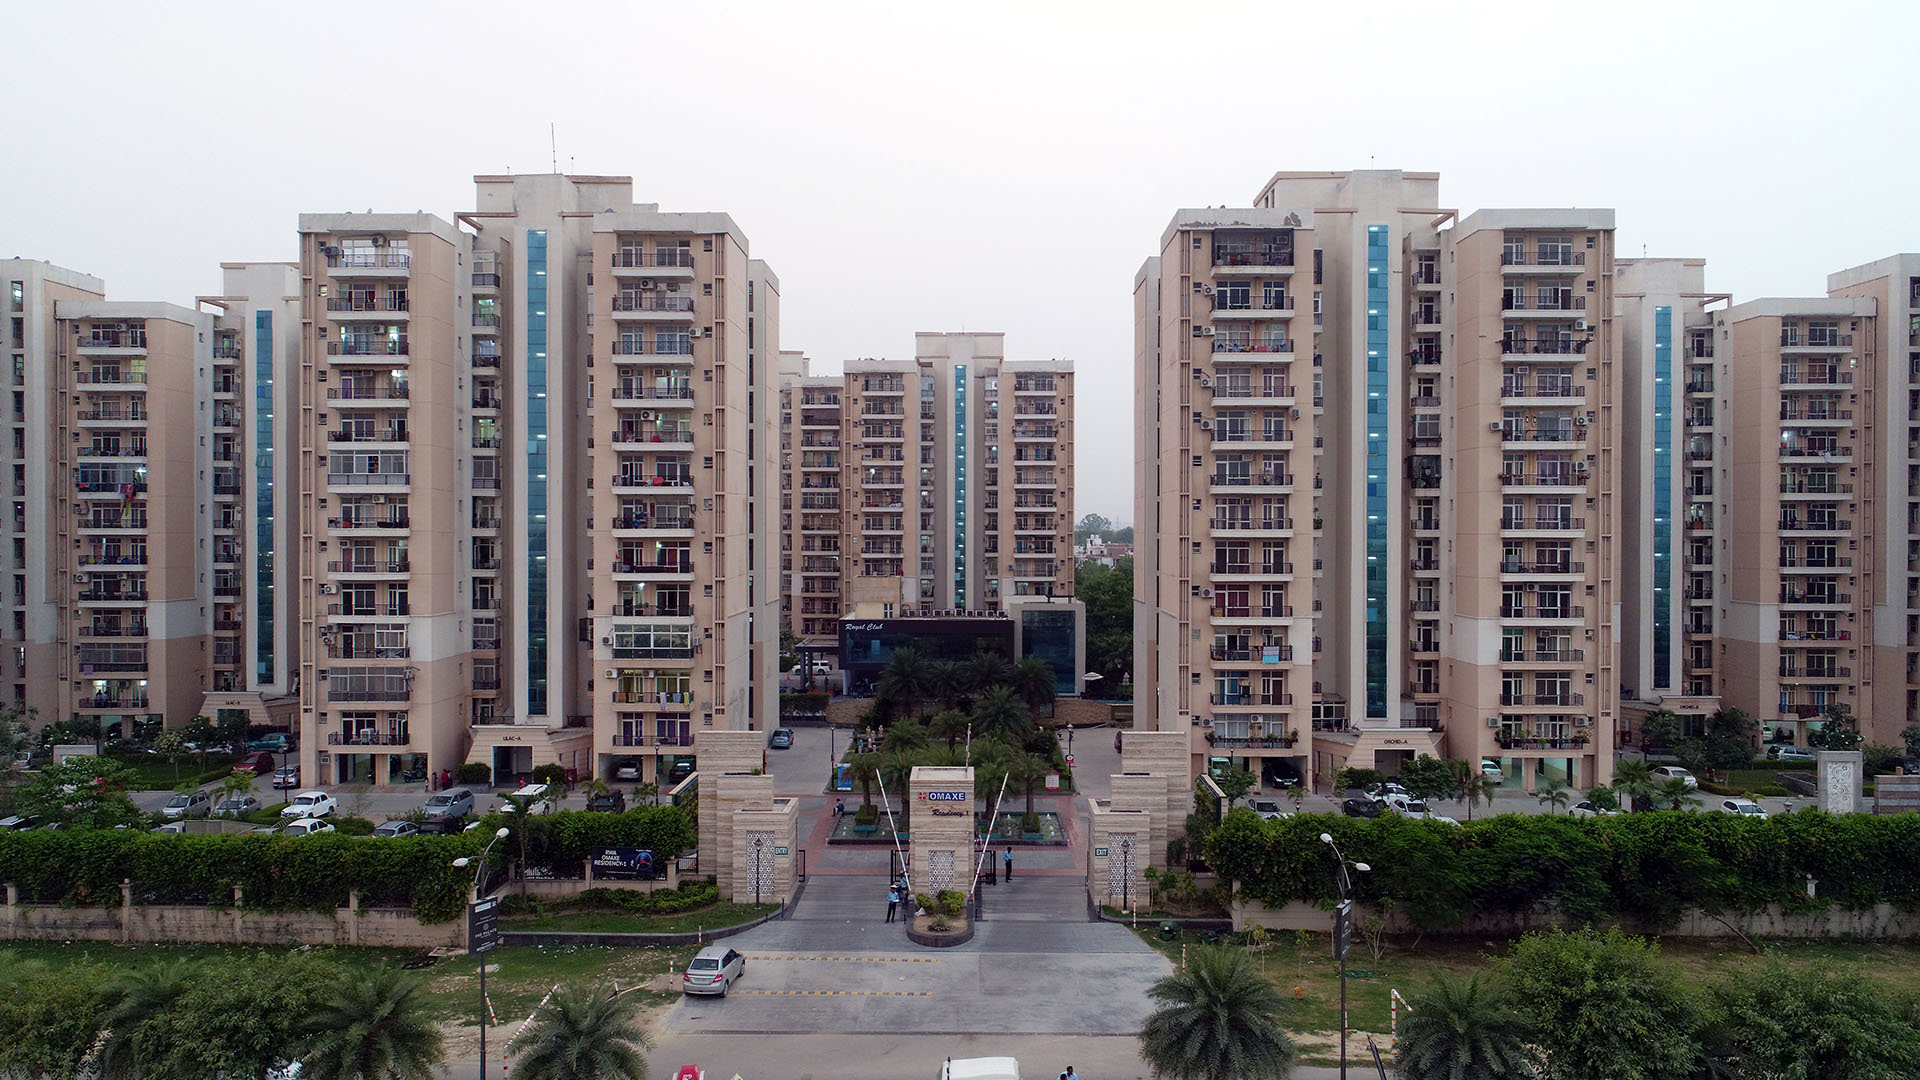 Eyeing 2 BHK flats in Lucknow